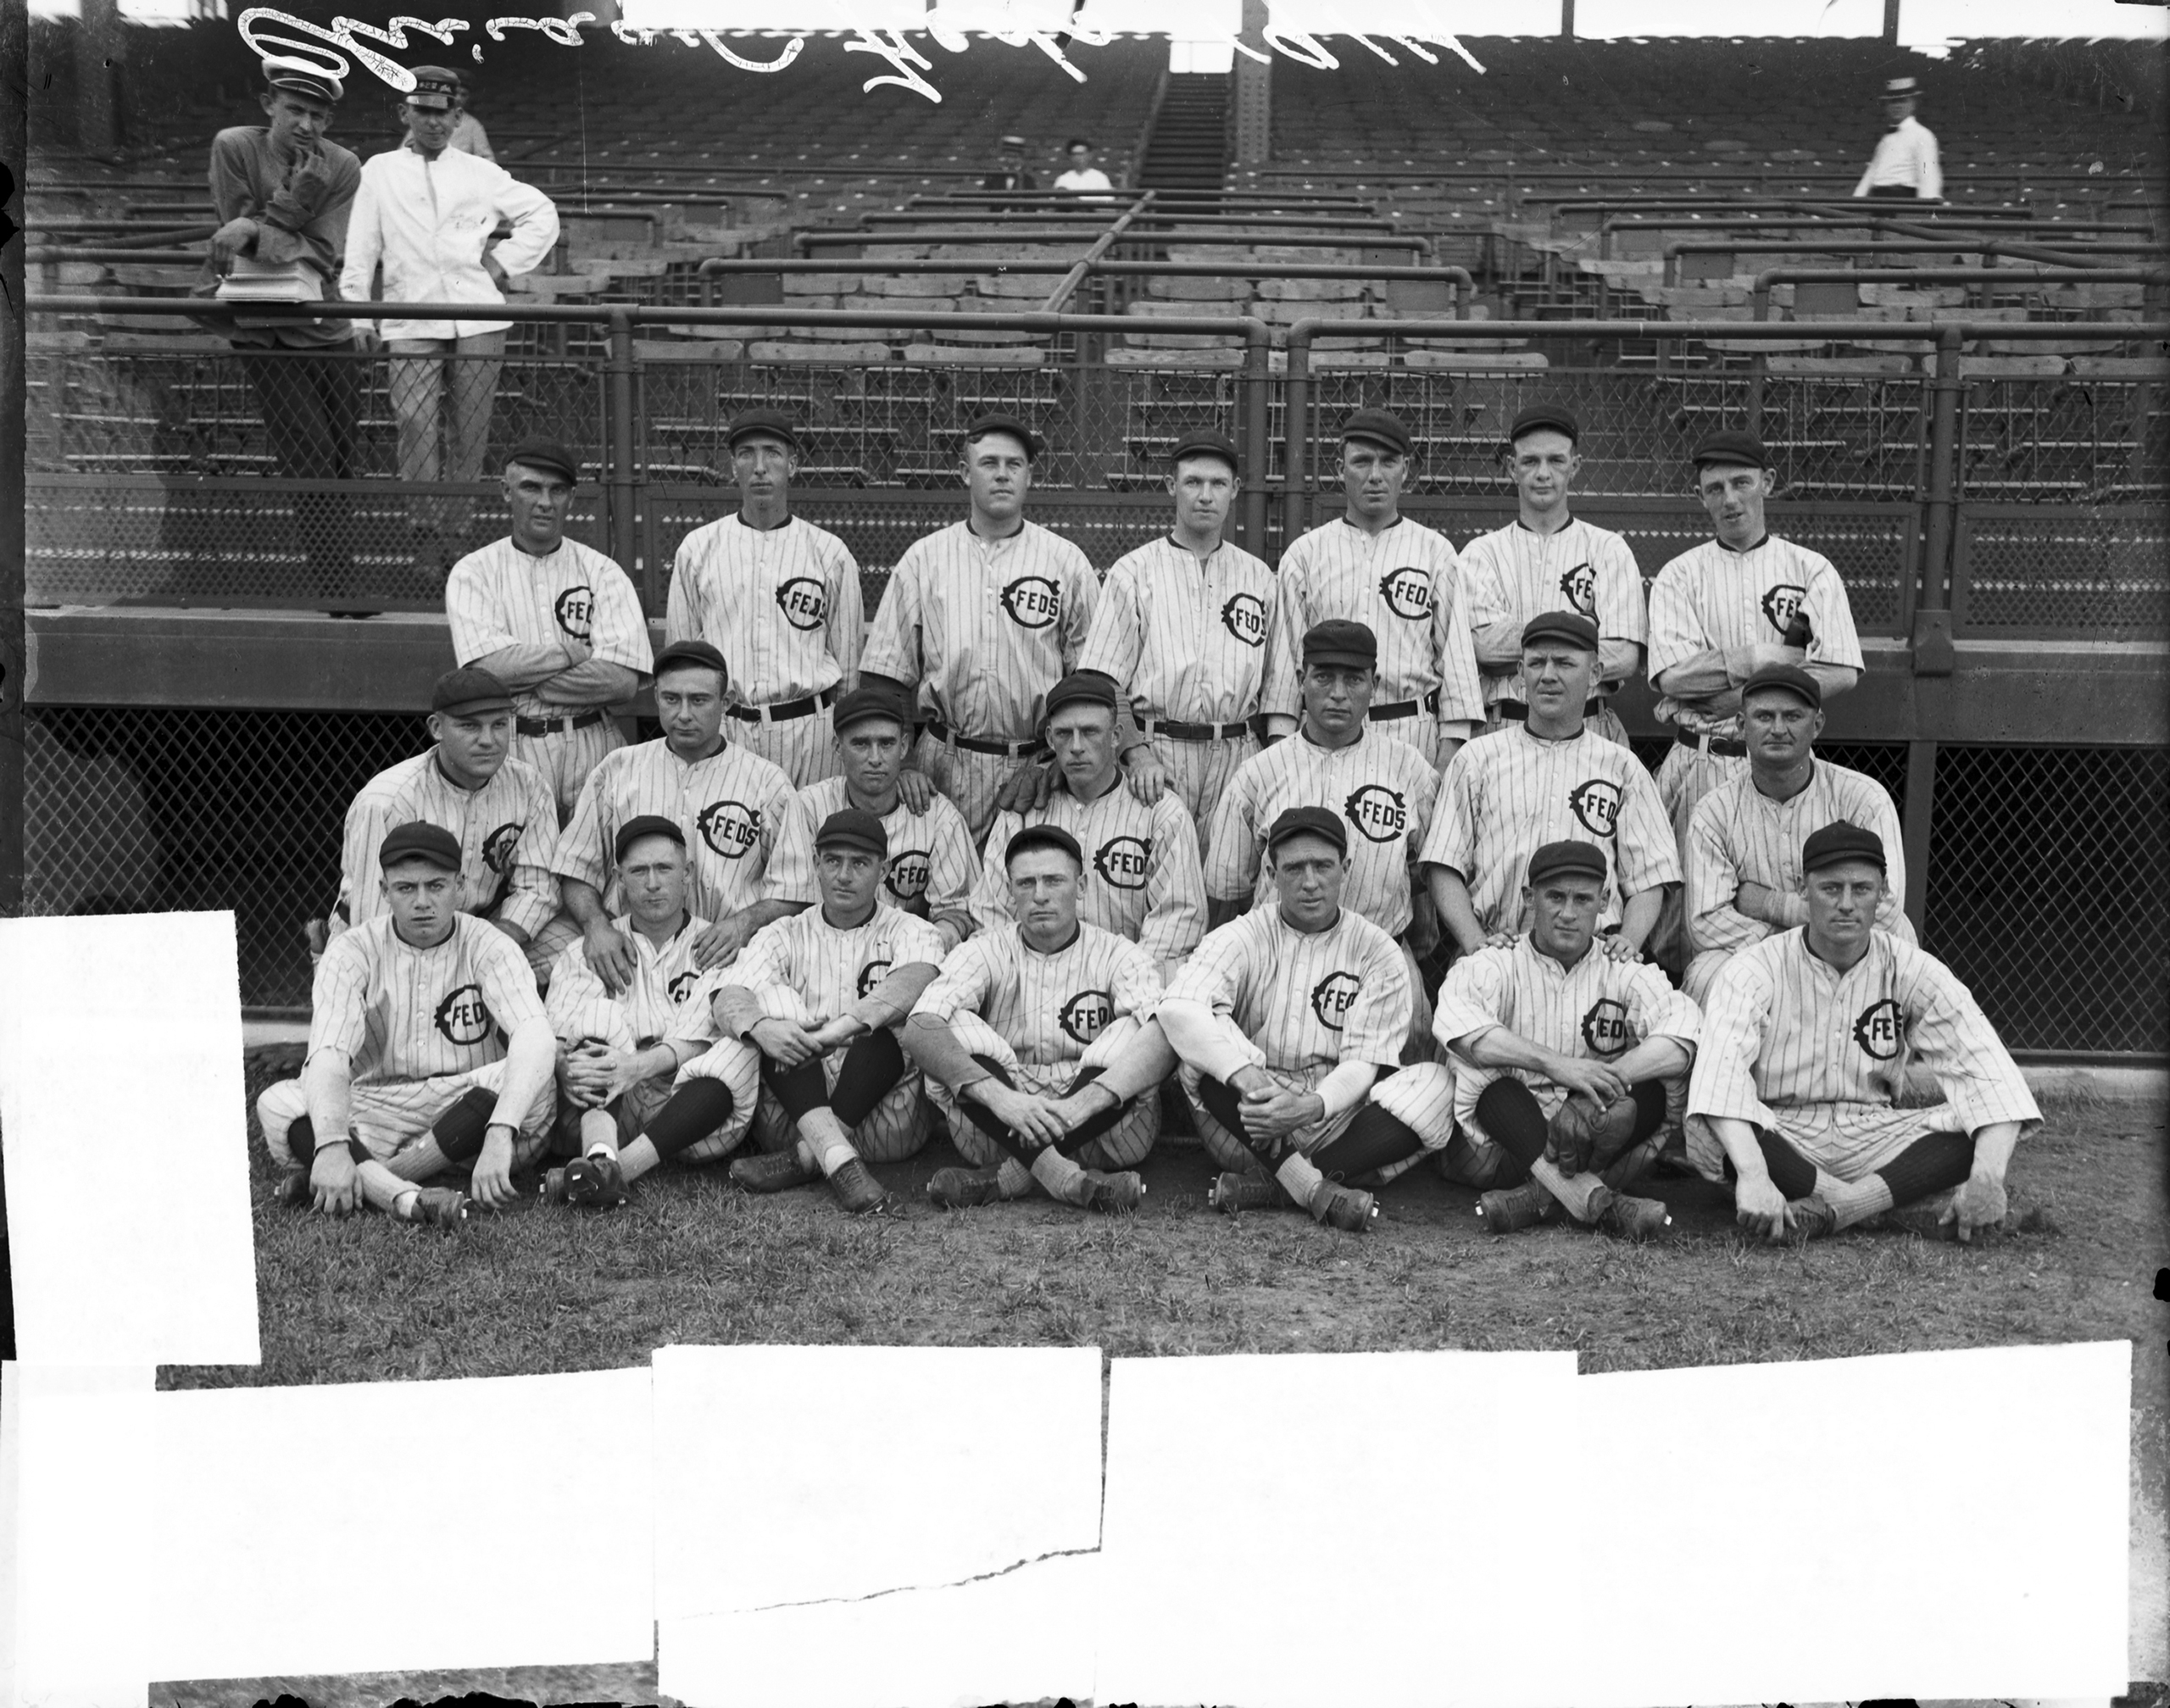 Members of the Federal League's Chicago Whales baseball team sitting and standing in front of grandstands at Weeghman Park, Chicago, 1914. Weeghman Park was renamed Wrigley Field in 1926.